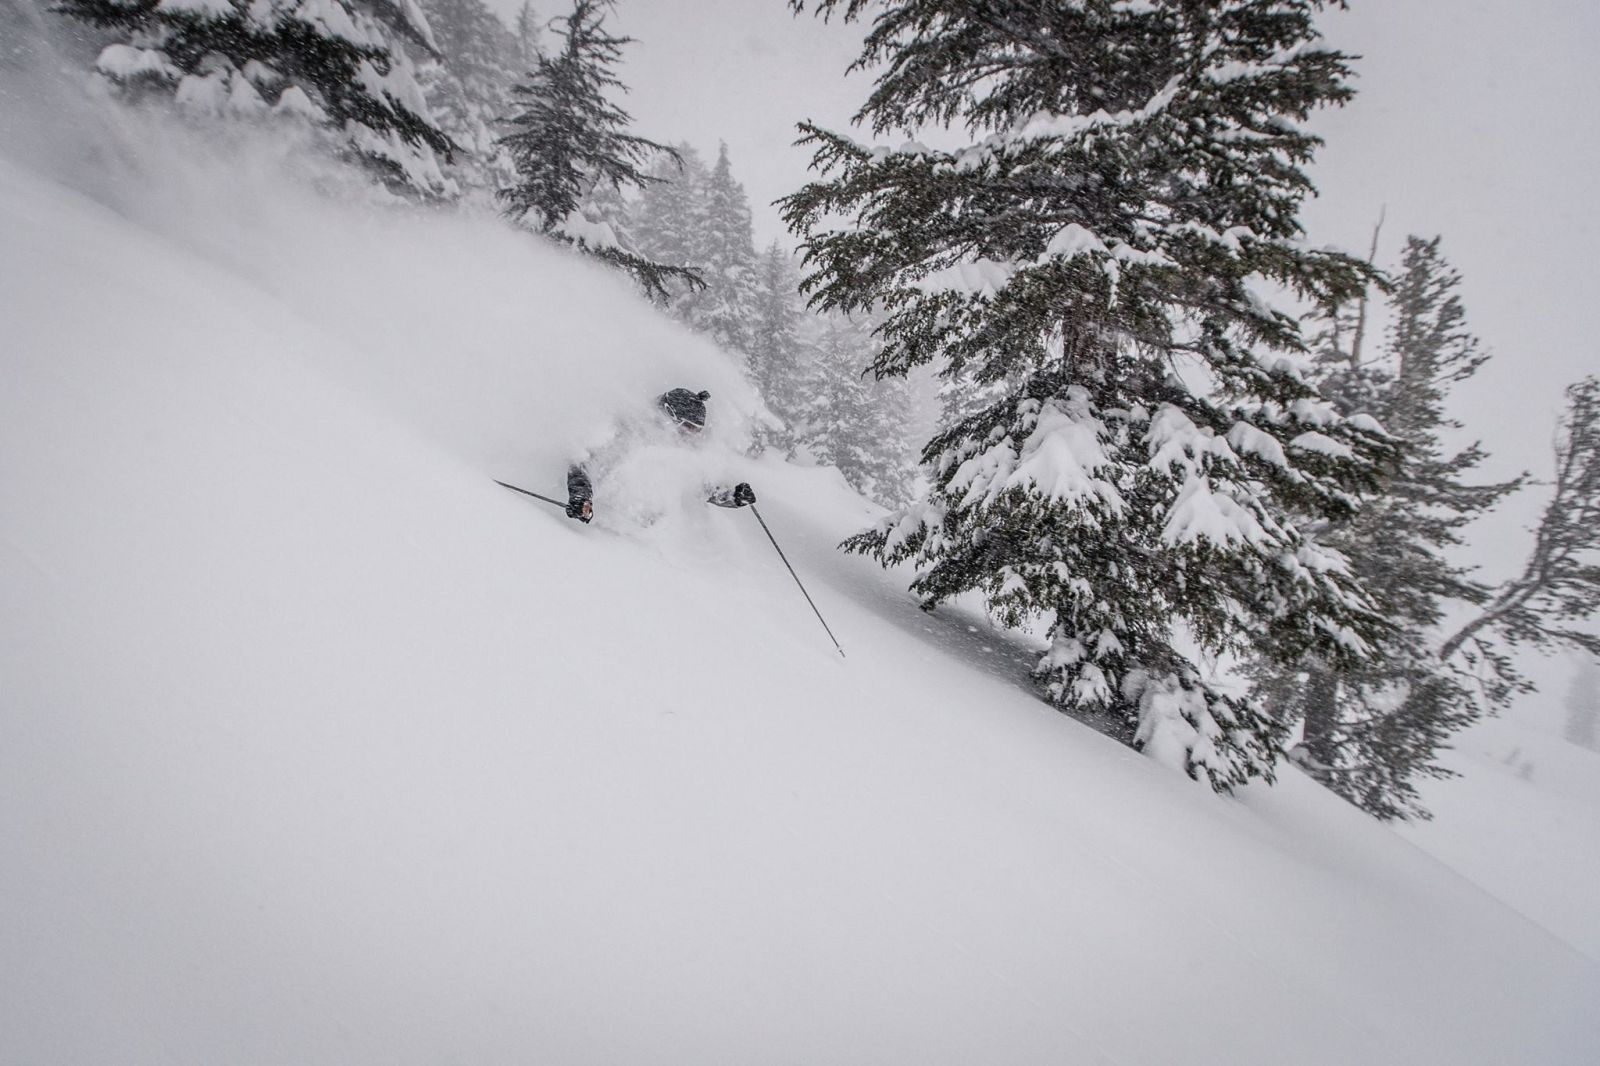 Mountain Collective pass has a collection of 16 resorts - 2 days per resort plus a third day on the resort of your choice- Mammoth Mountain - Photo: Mountain Collective.